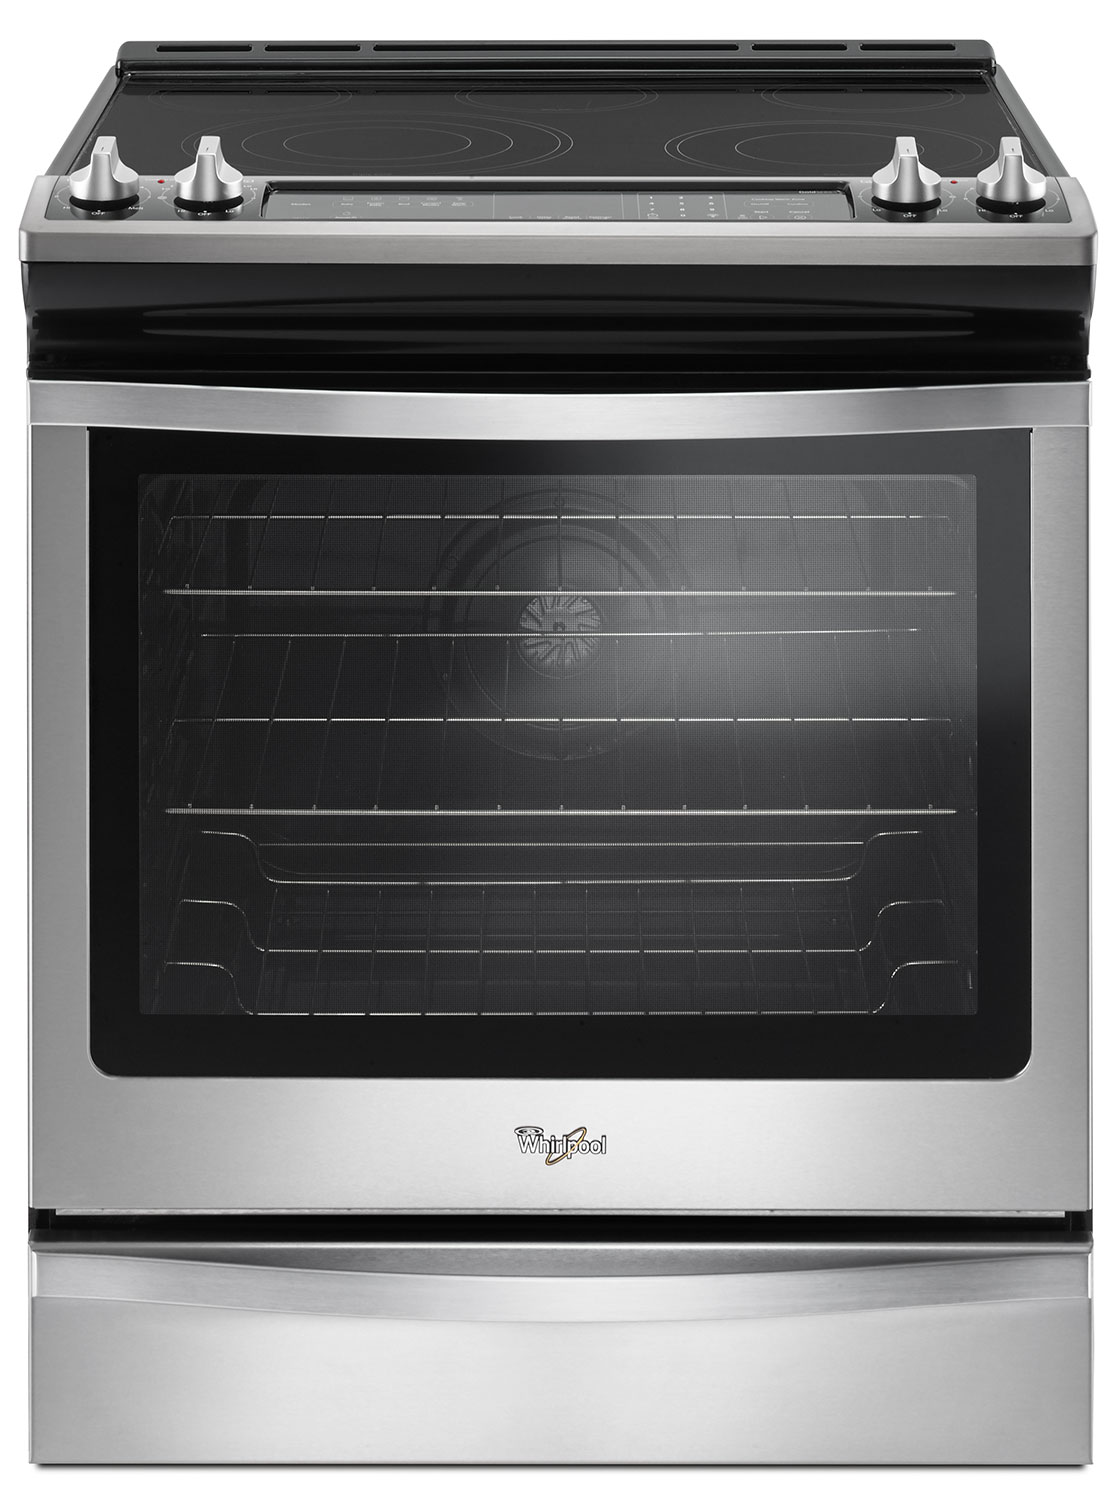 Whirlpool 6.4 Cu. Ft. Slide-In Electric Range – YWEE745H0FS